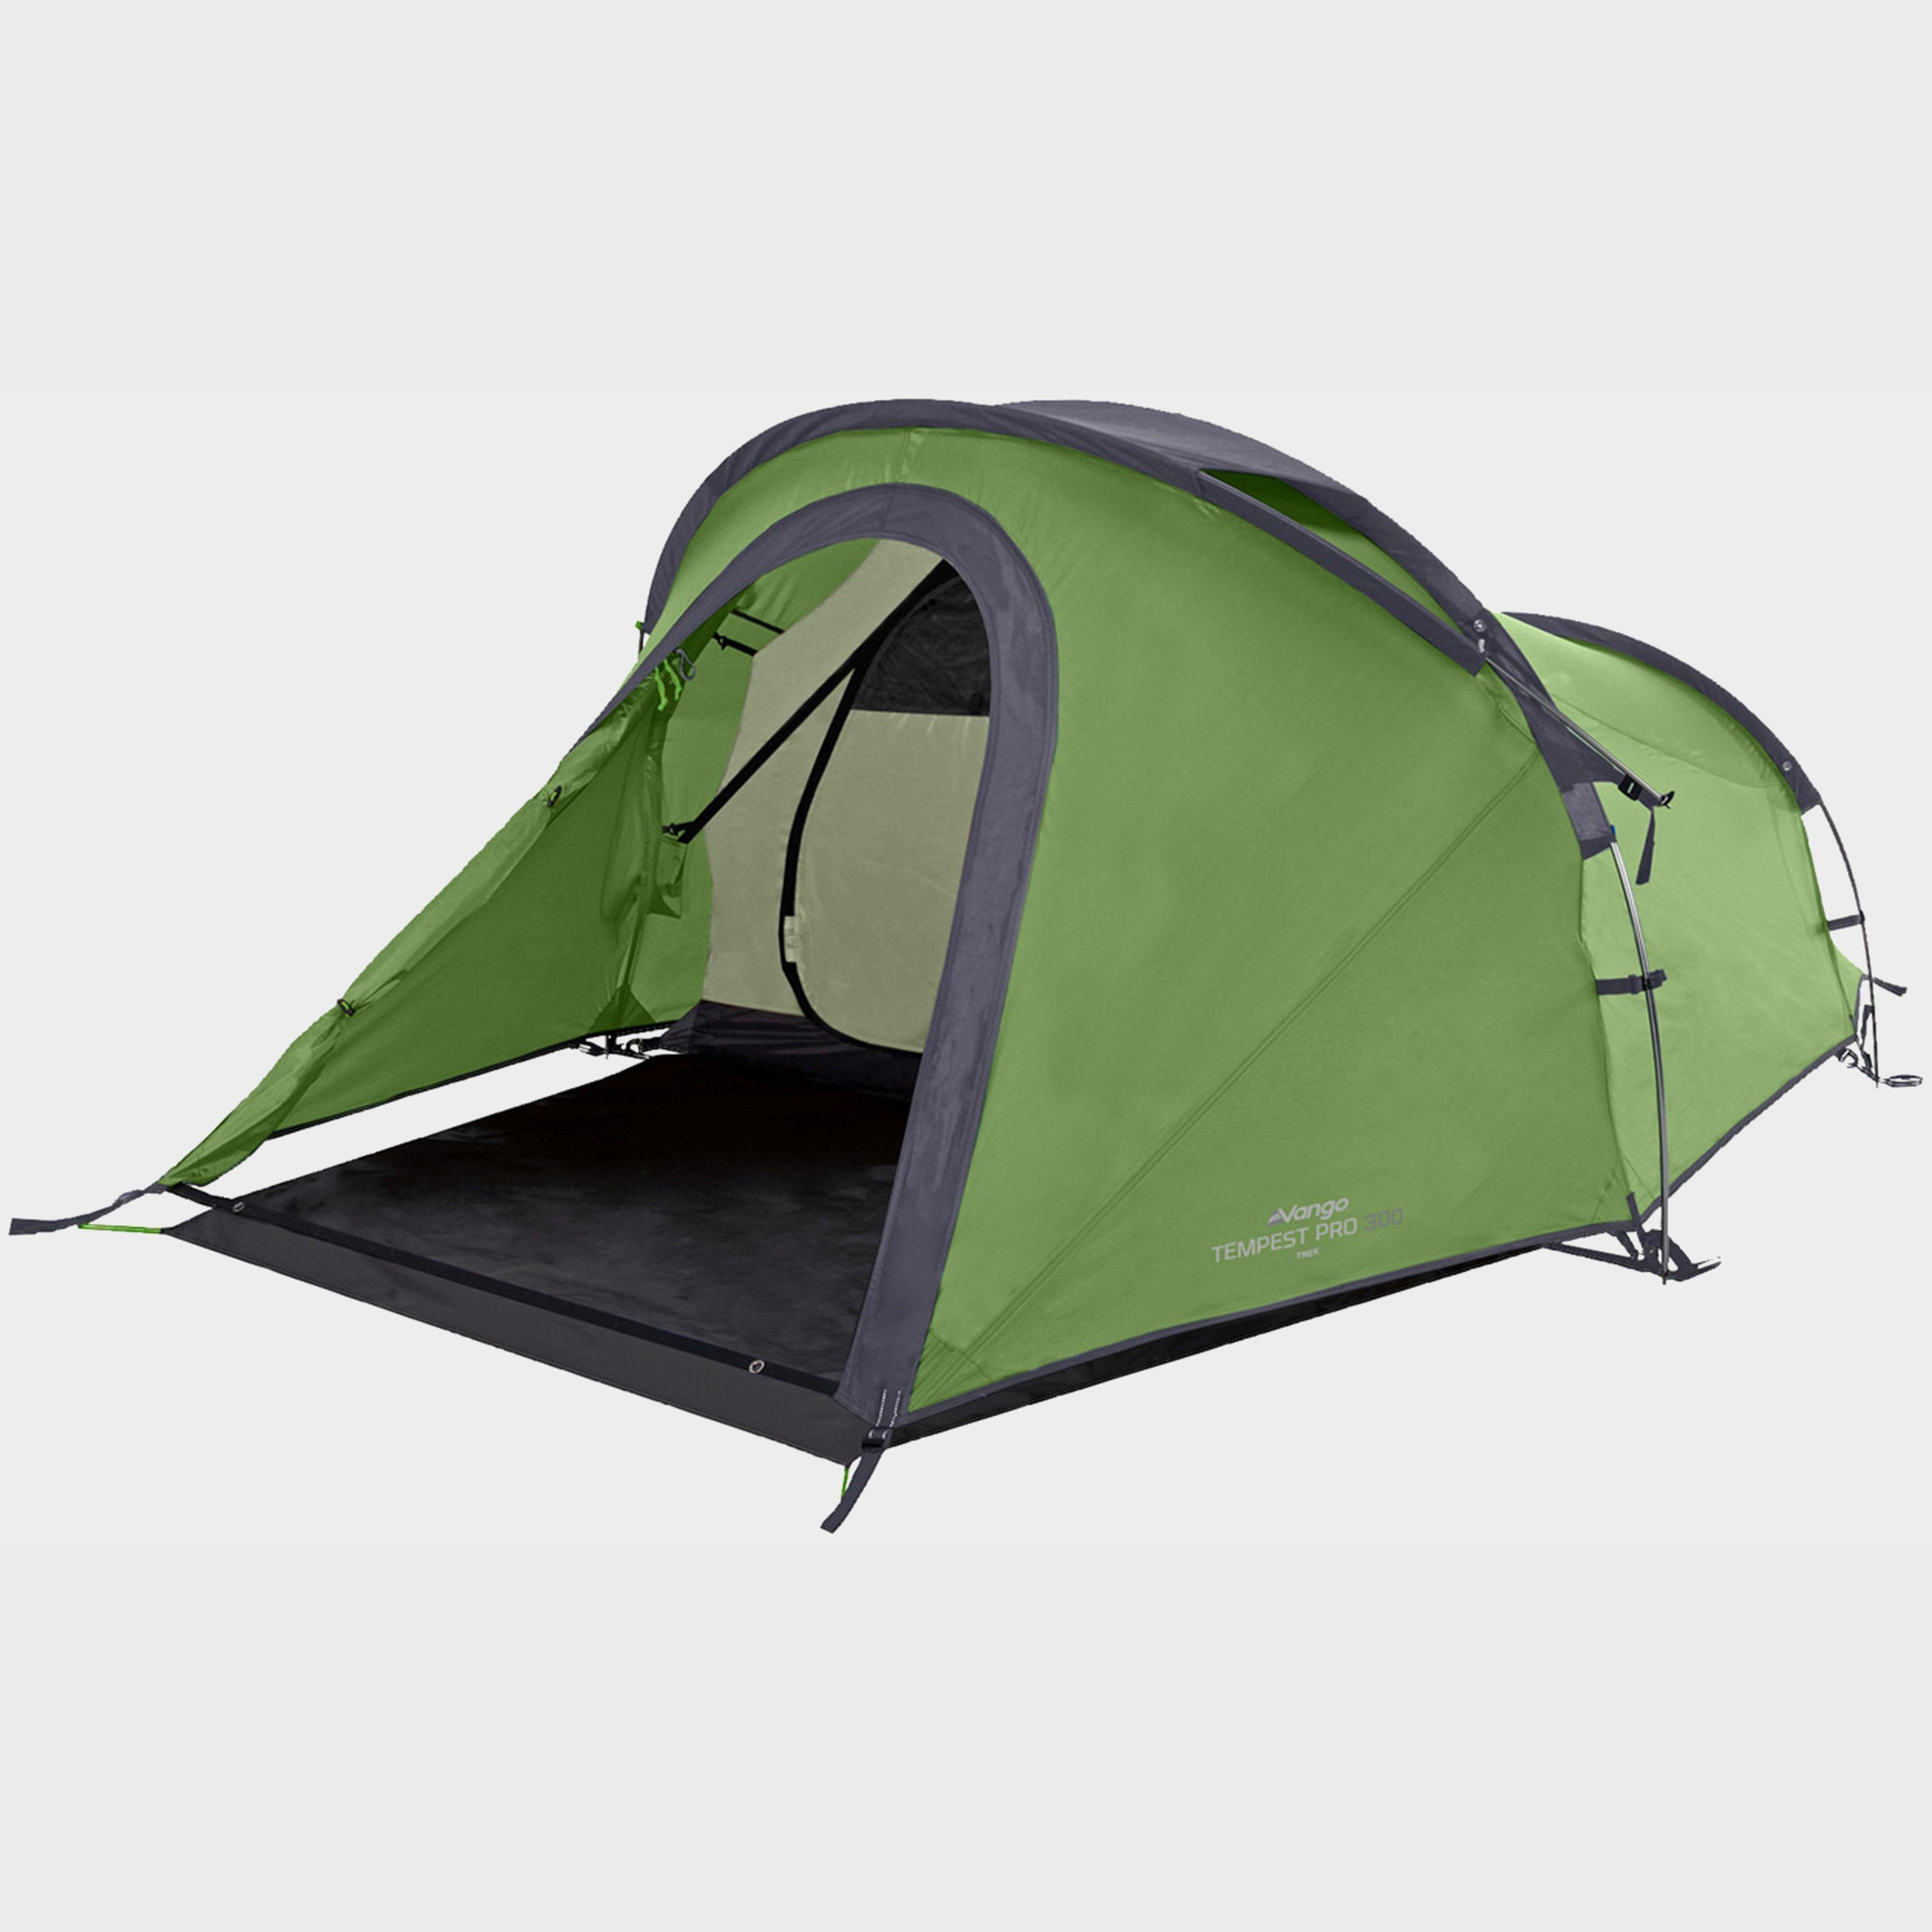 Green VANGO Tempest 300 Pro Backpacking Tent ... & Backpacking Tent | Easy Carry Tents | Millets